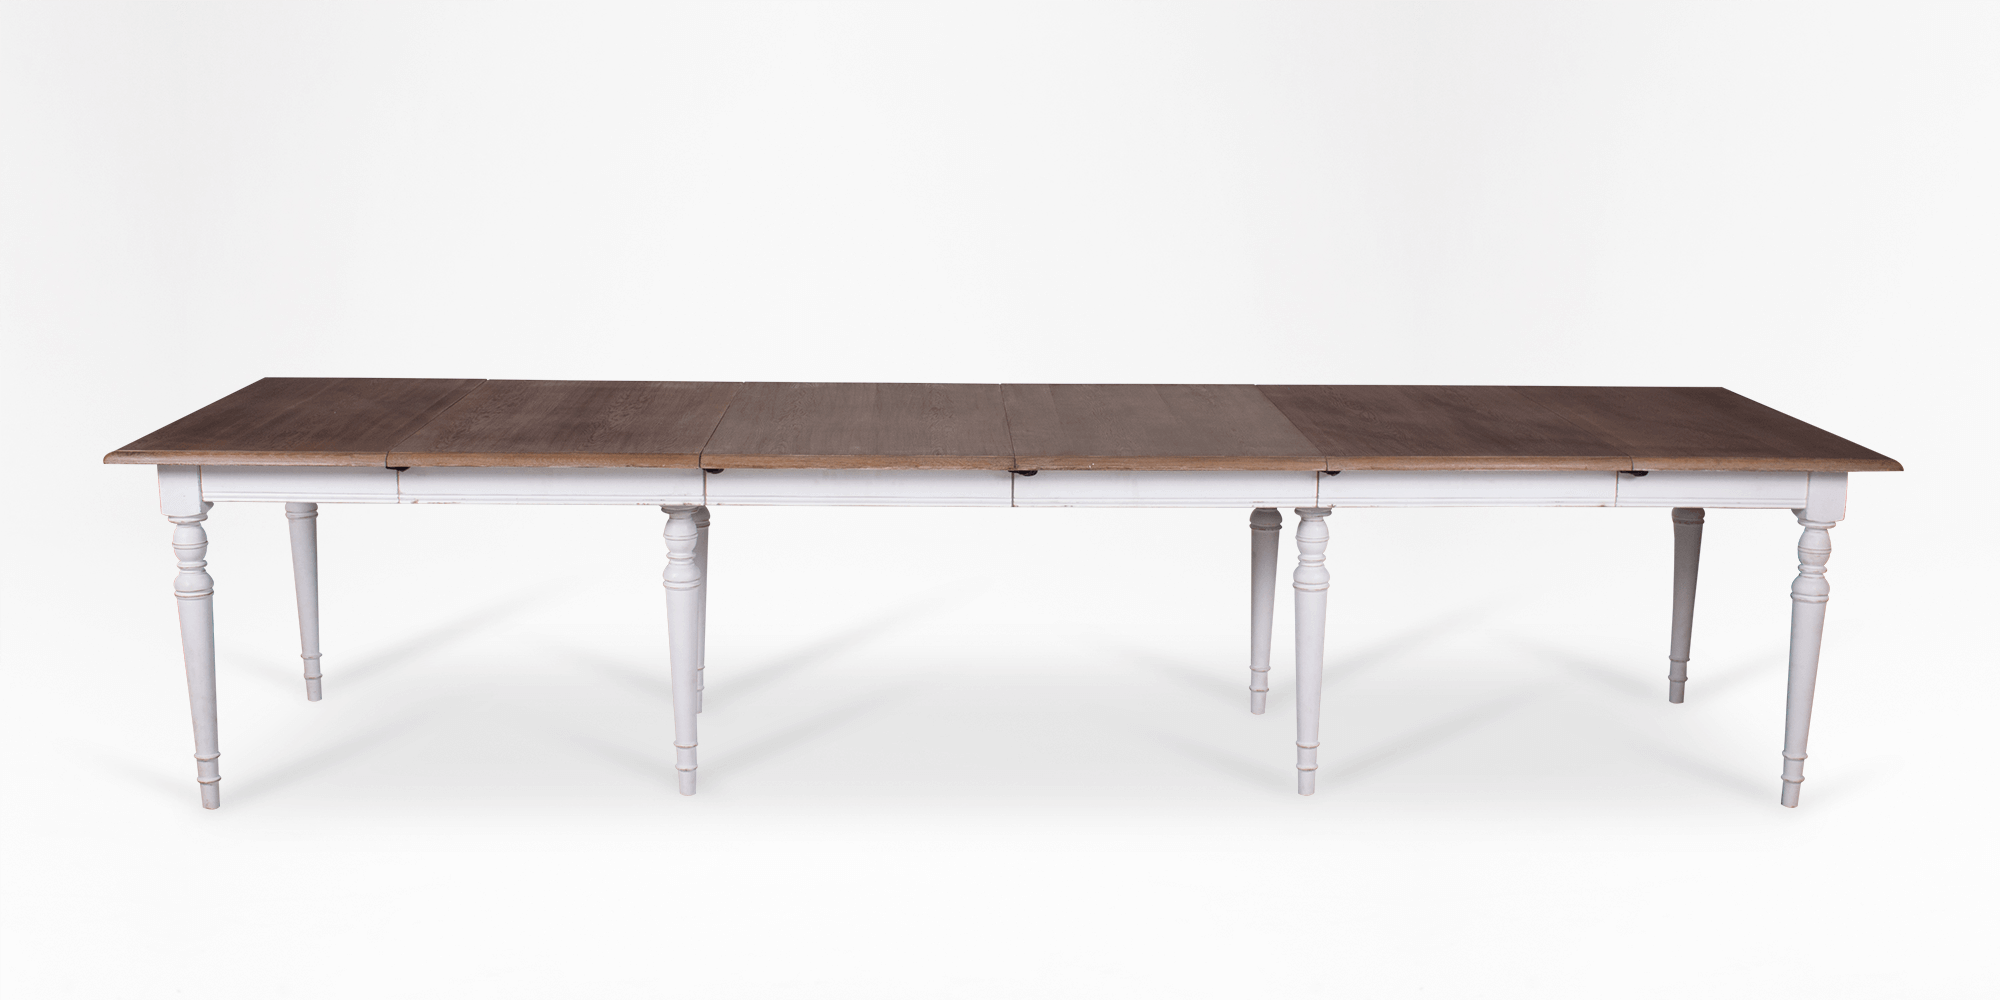 FURNISH 1 Dining table MDF top office table with metal structure Adjustable Scandinavian kitchen table Extensible